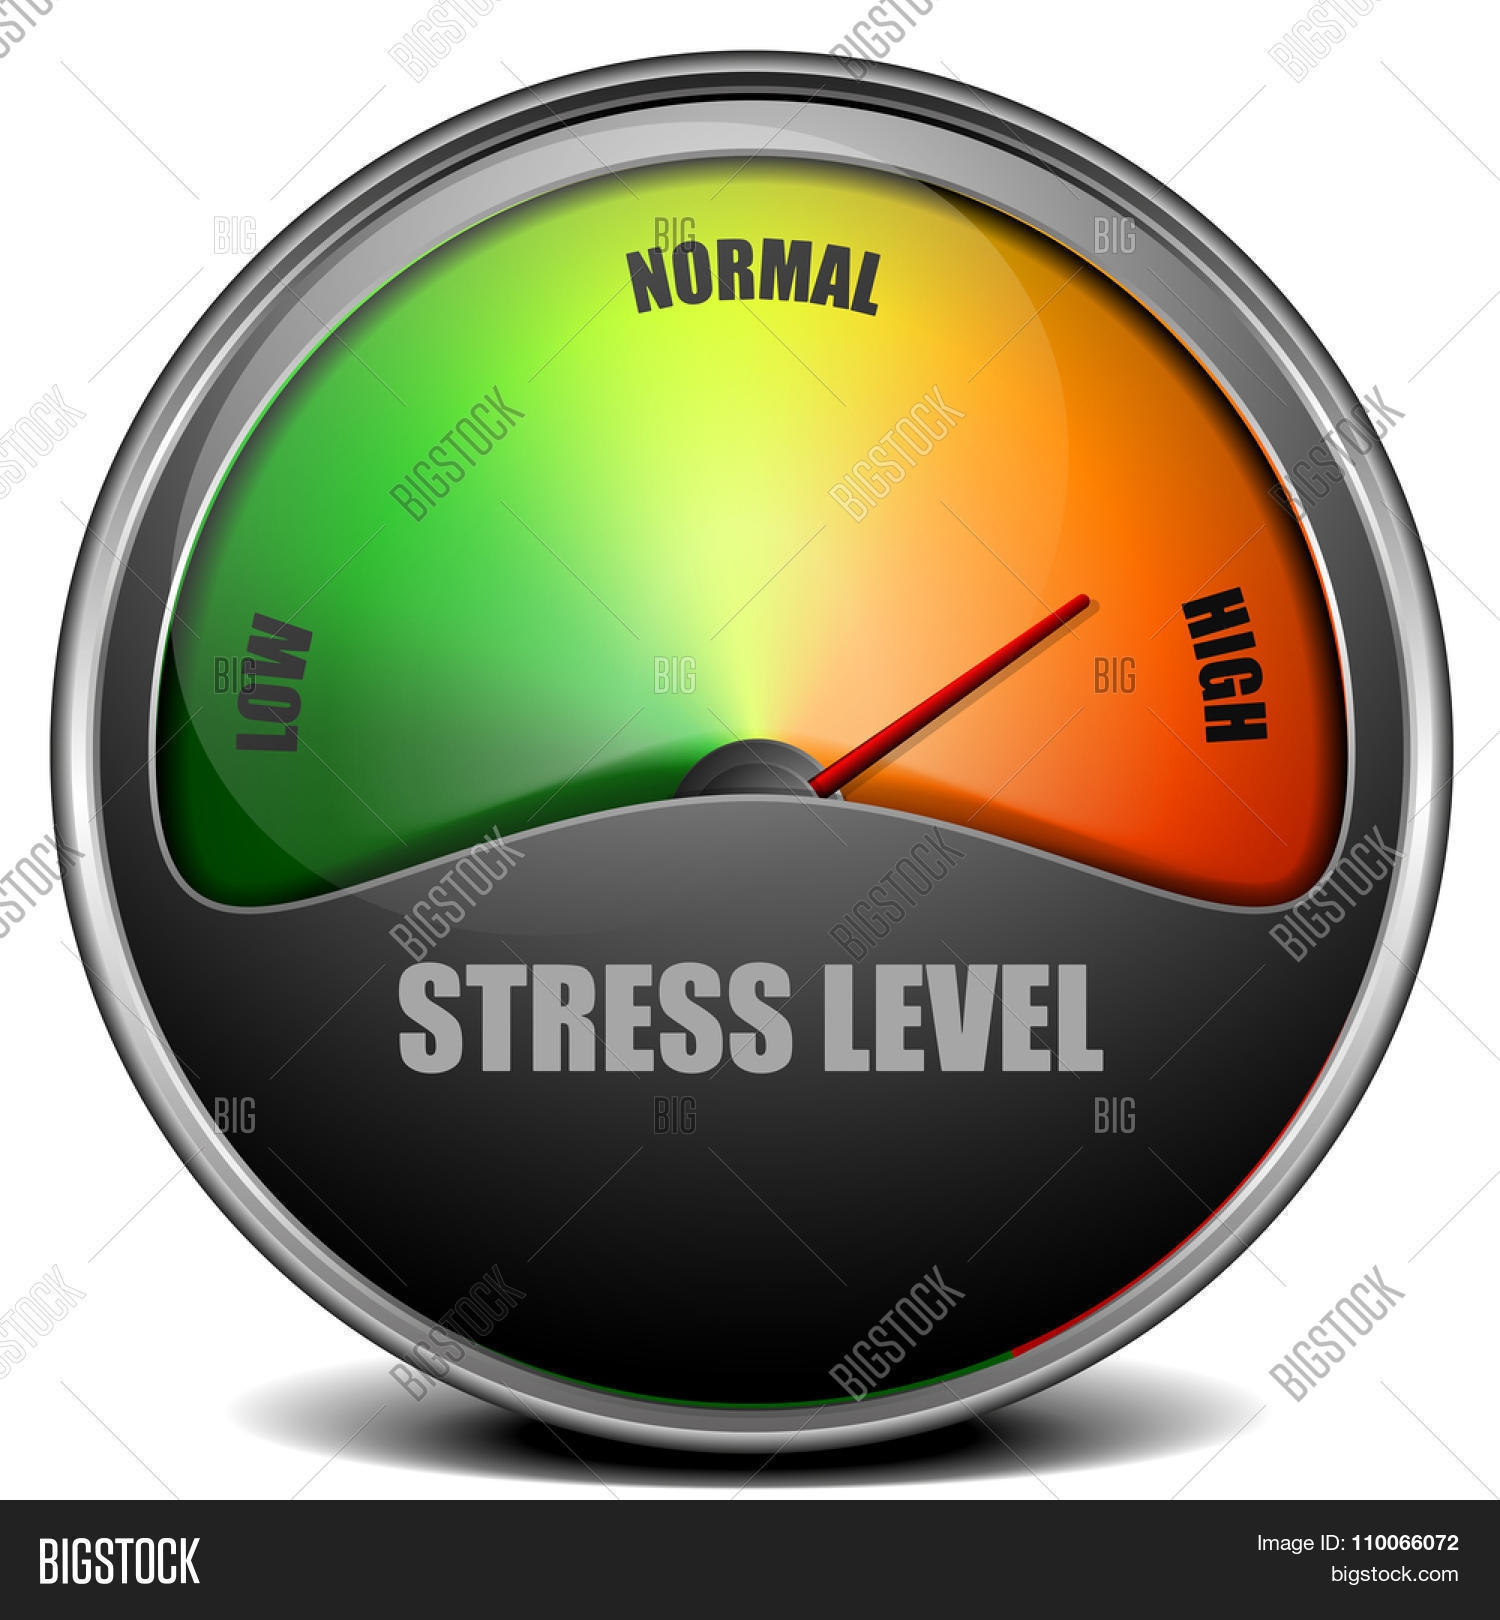 Stress Level Meter : Illustration stress level meter vector photo bigstock